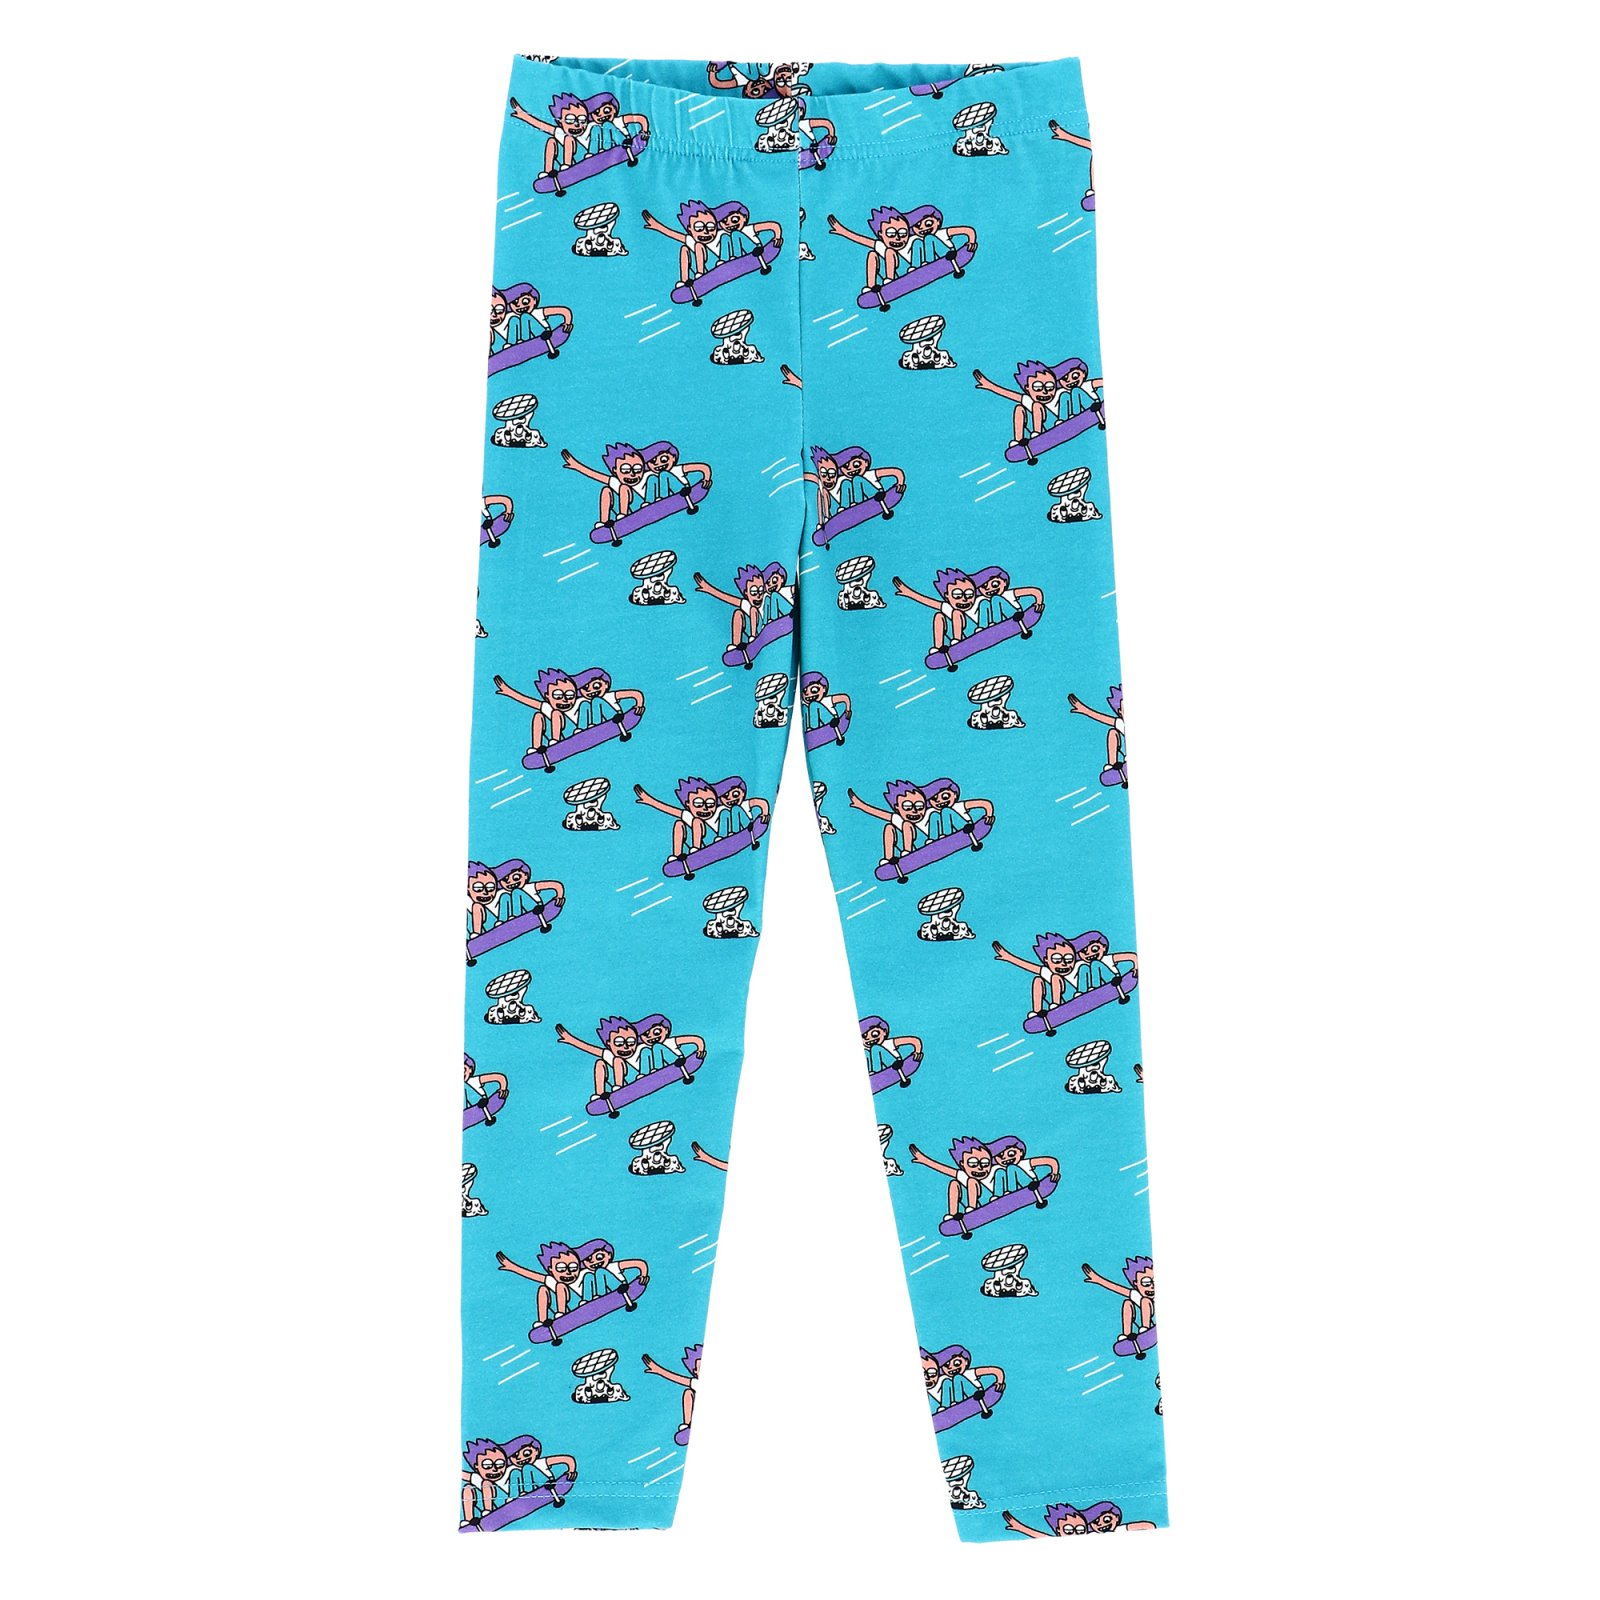 Sk8 Party Leggings by Jelly Alligator